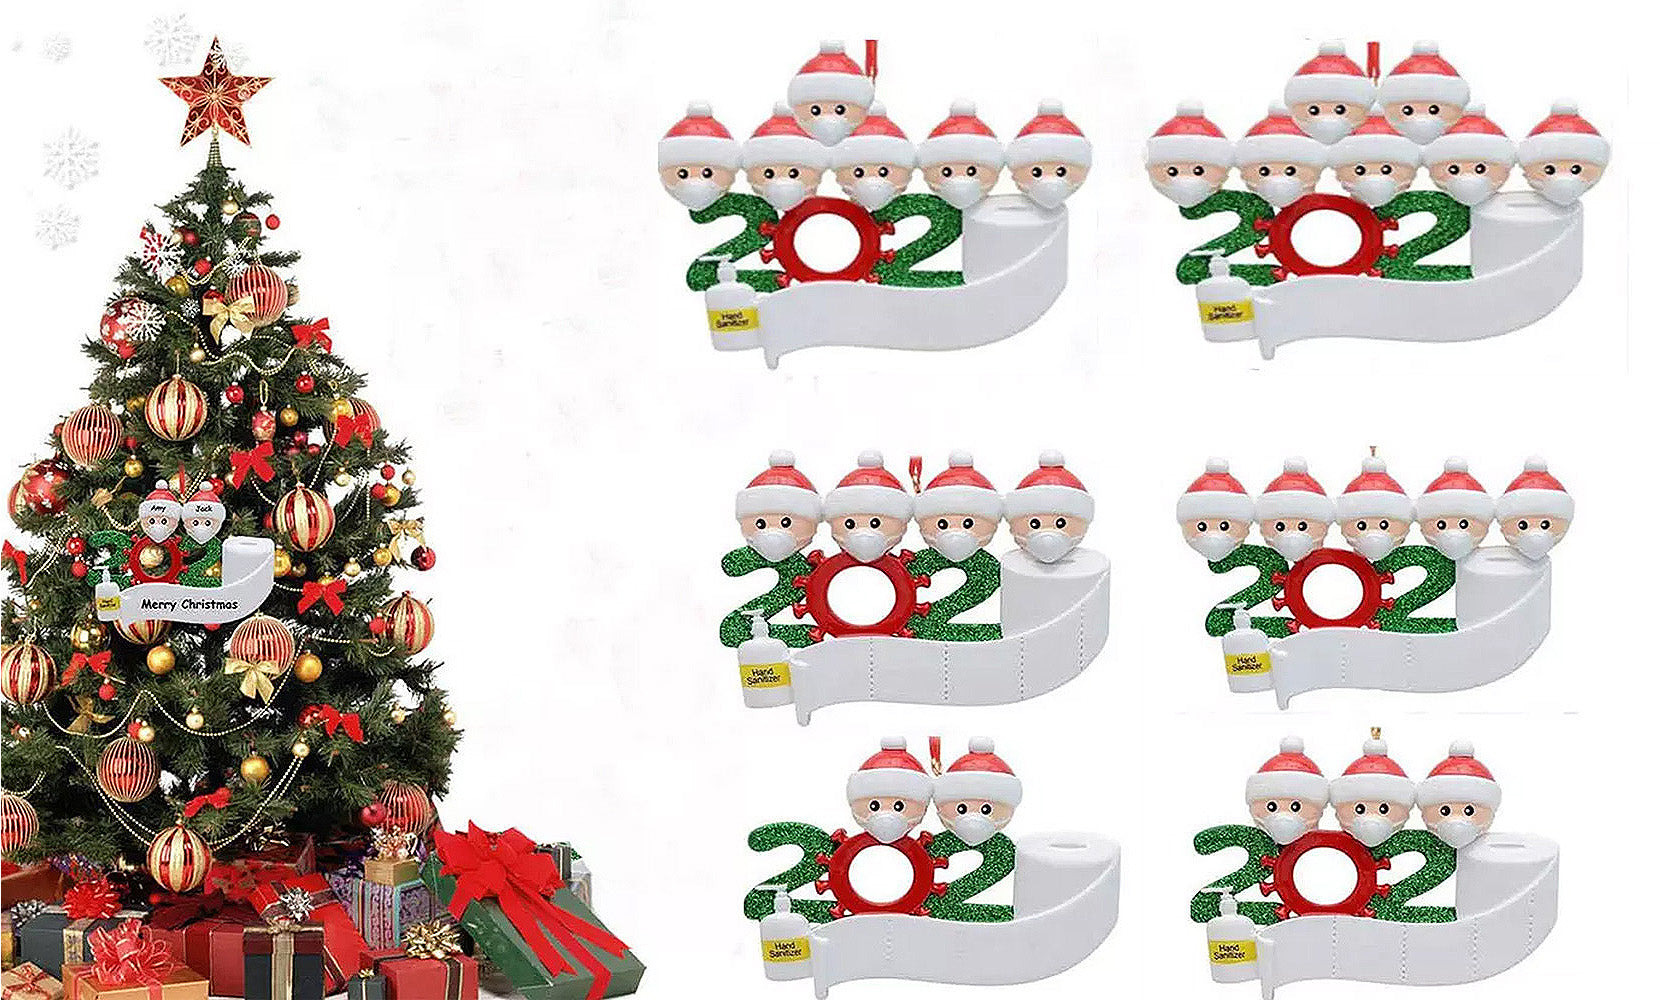 shopify-2020 Quarantine Family  Christmas Ornament Personalized Xmas Gifts-1